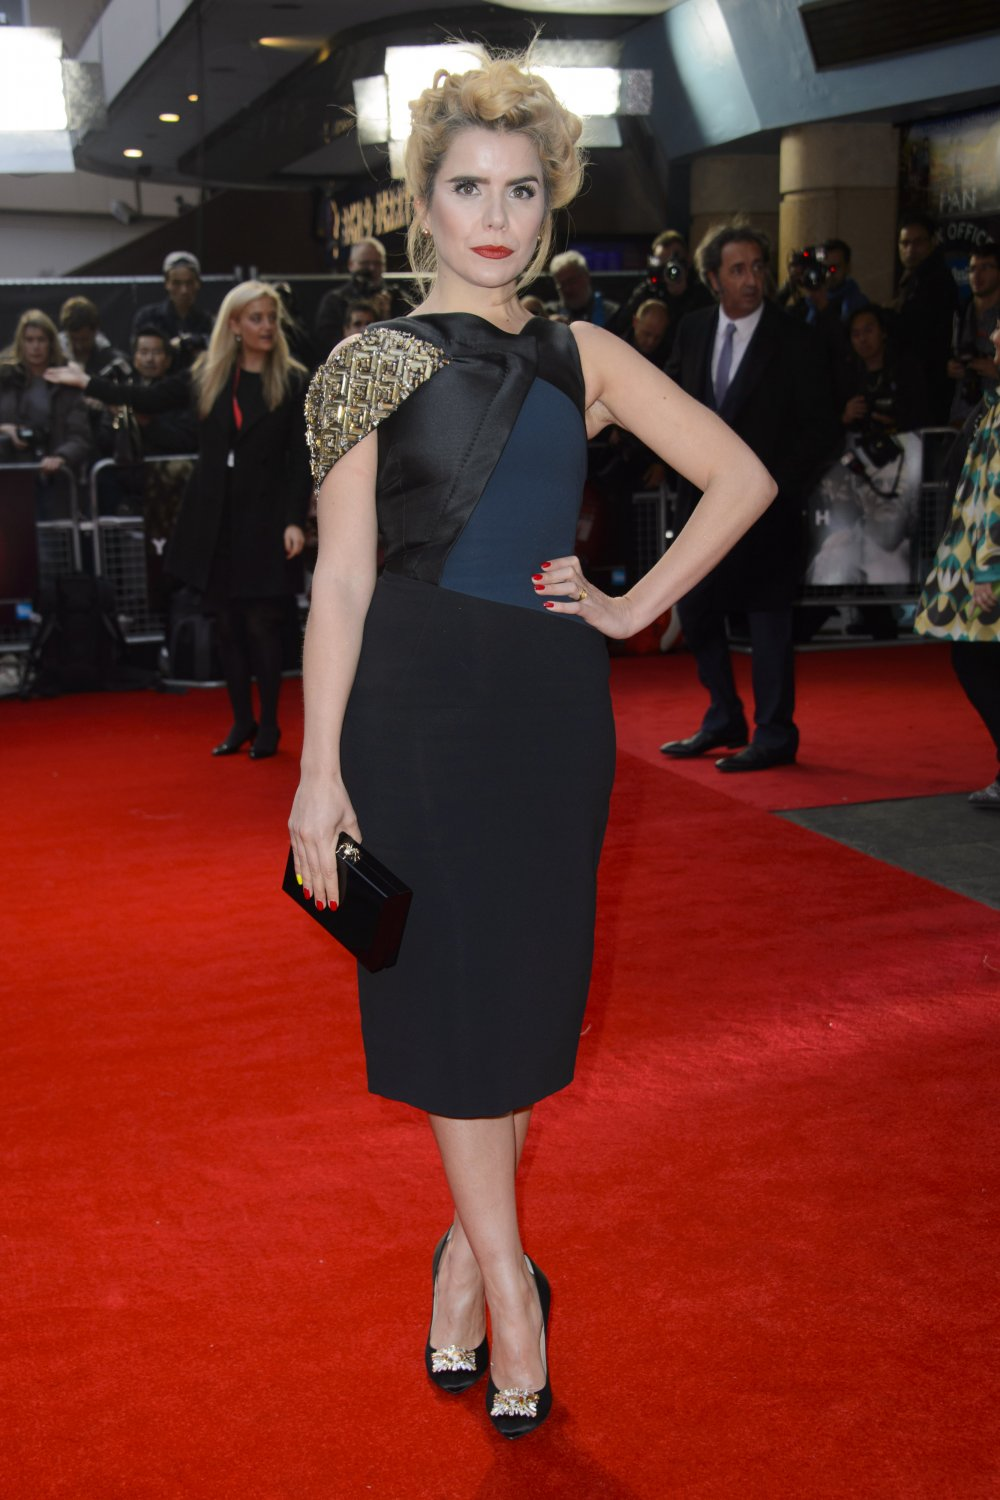 Paloma Faith at the Youth premiere